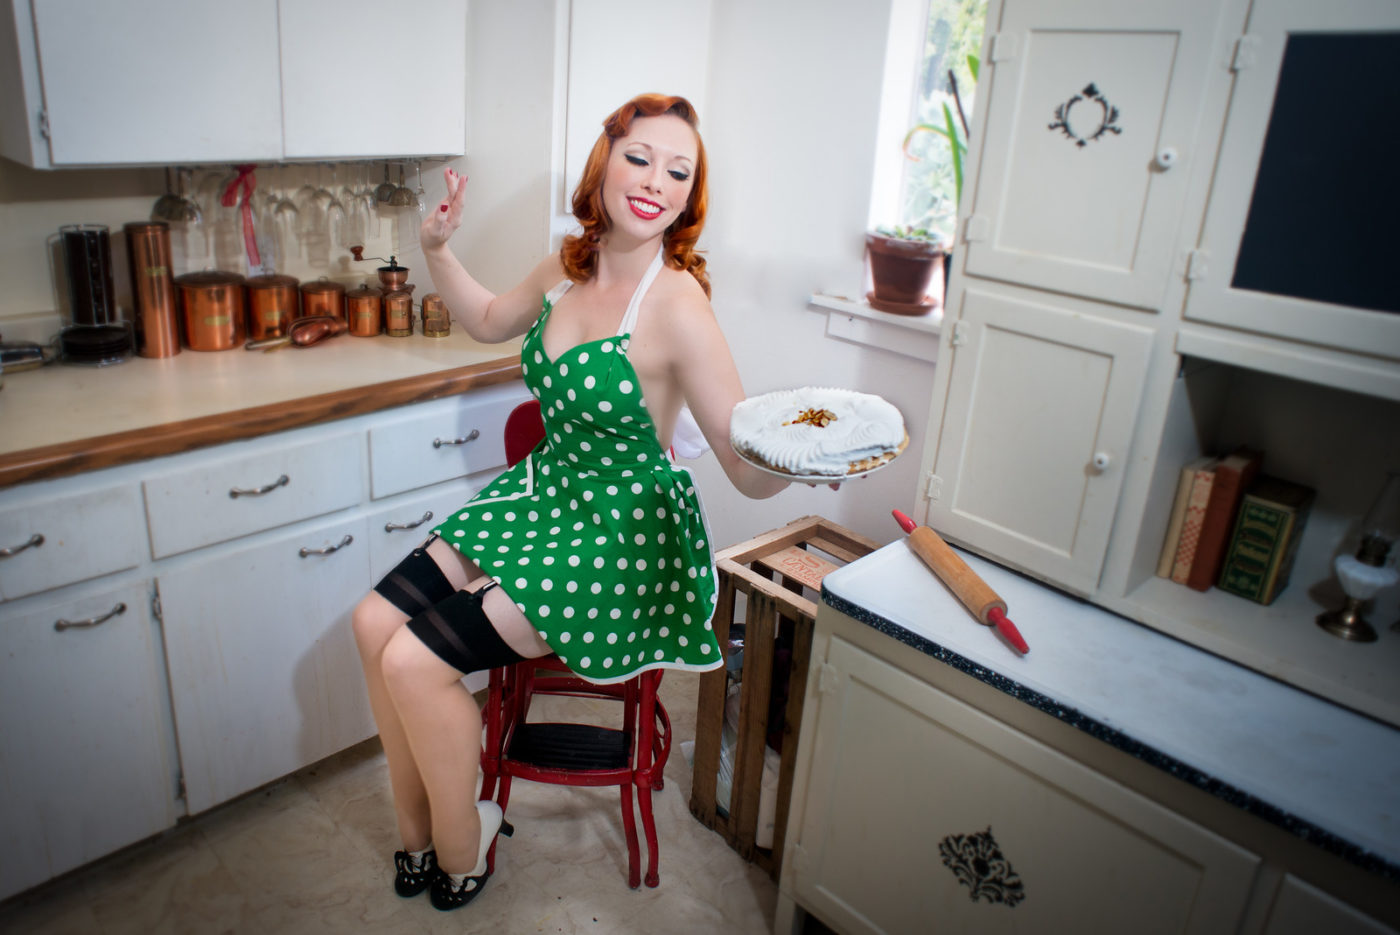 Real Beauty, Pinup Photography, Jenny, 1950's Housewife, Auey Santos Photography